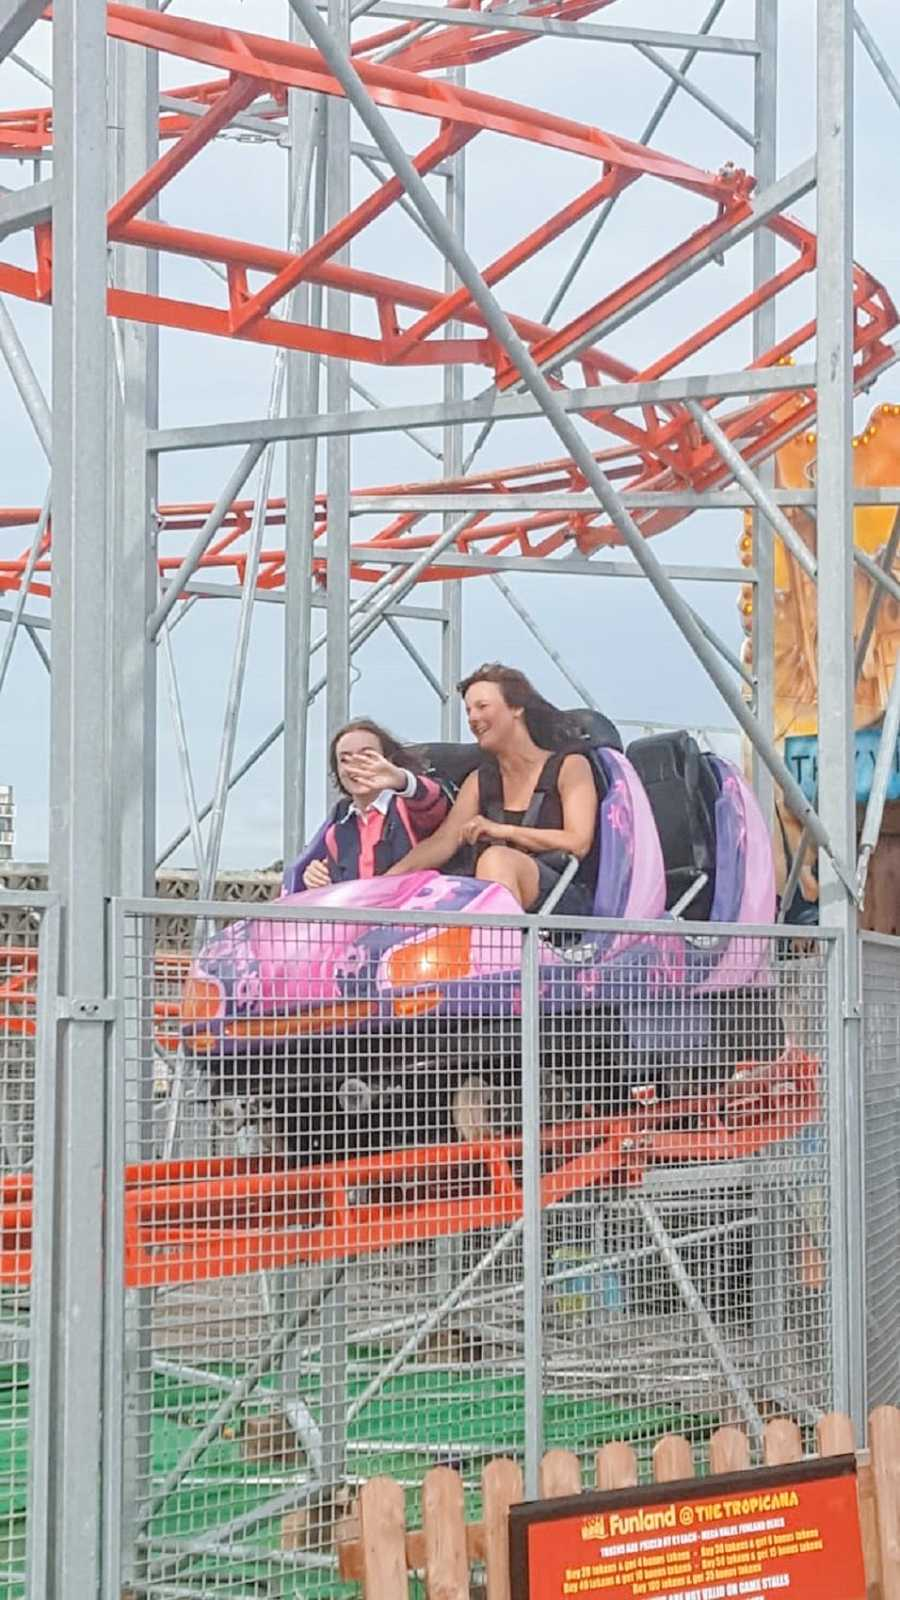 A woman and her mother riding a roller coaster